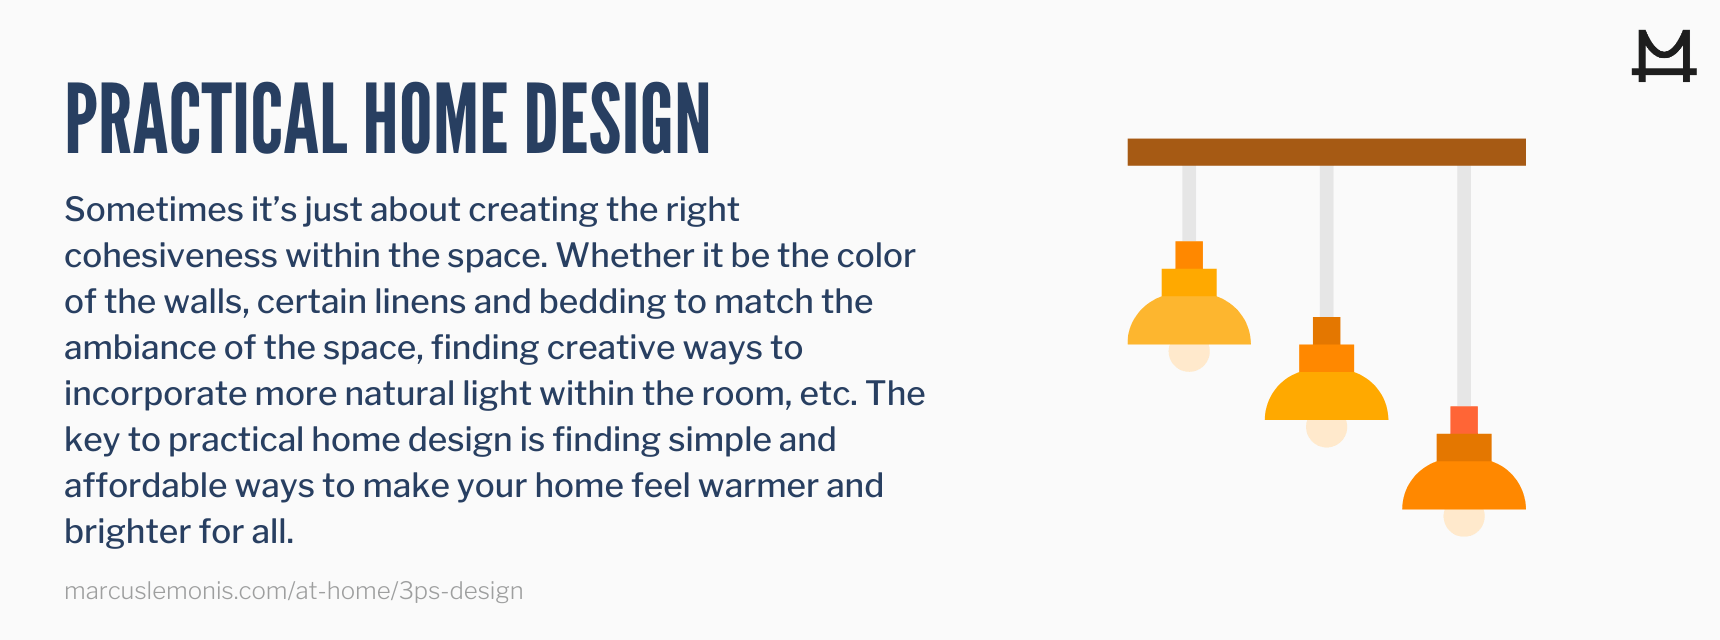 Tips on how to design your home in a practical way